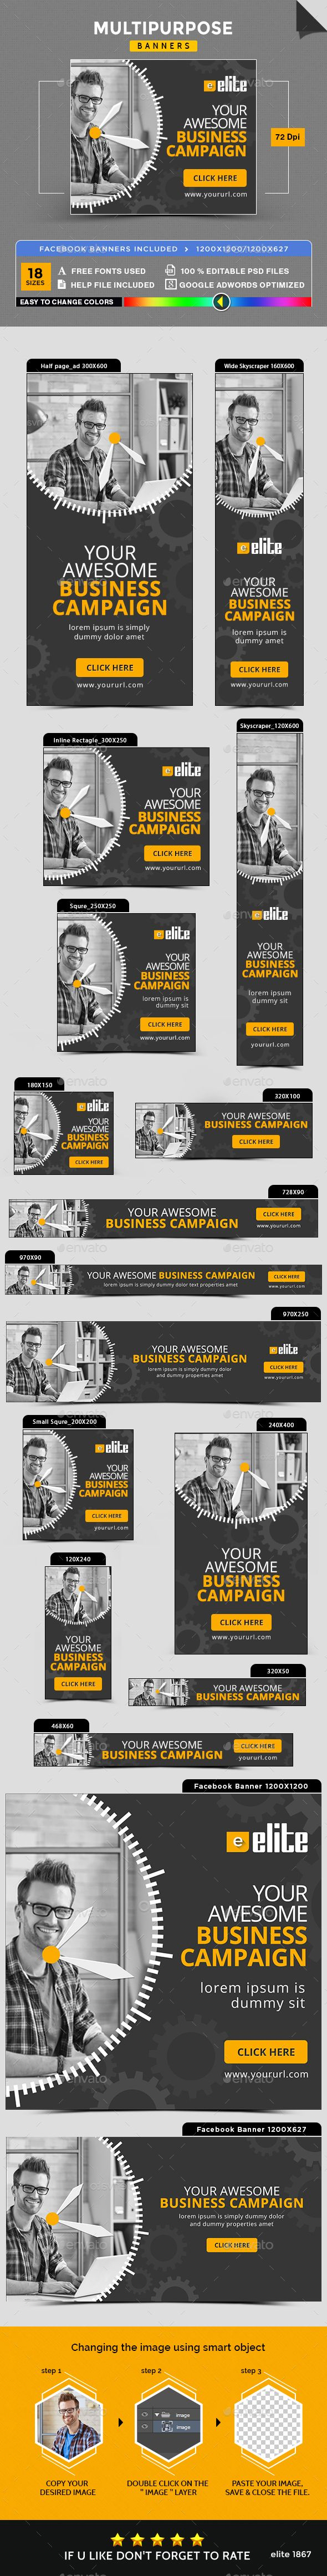 Multipurpose Banners Template PSD